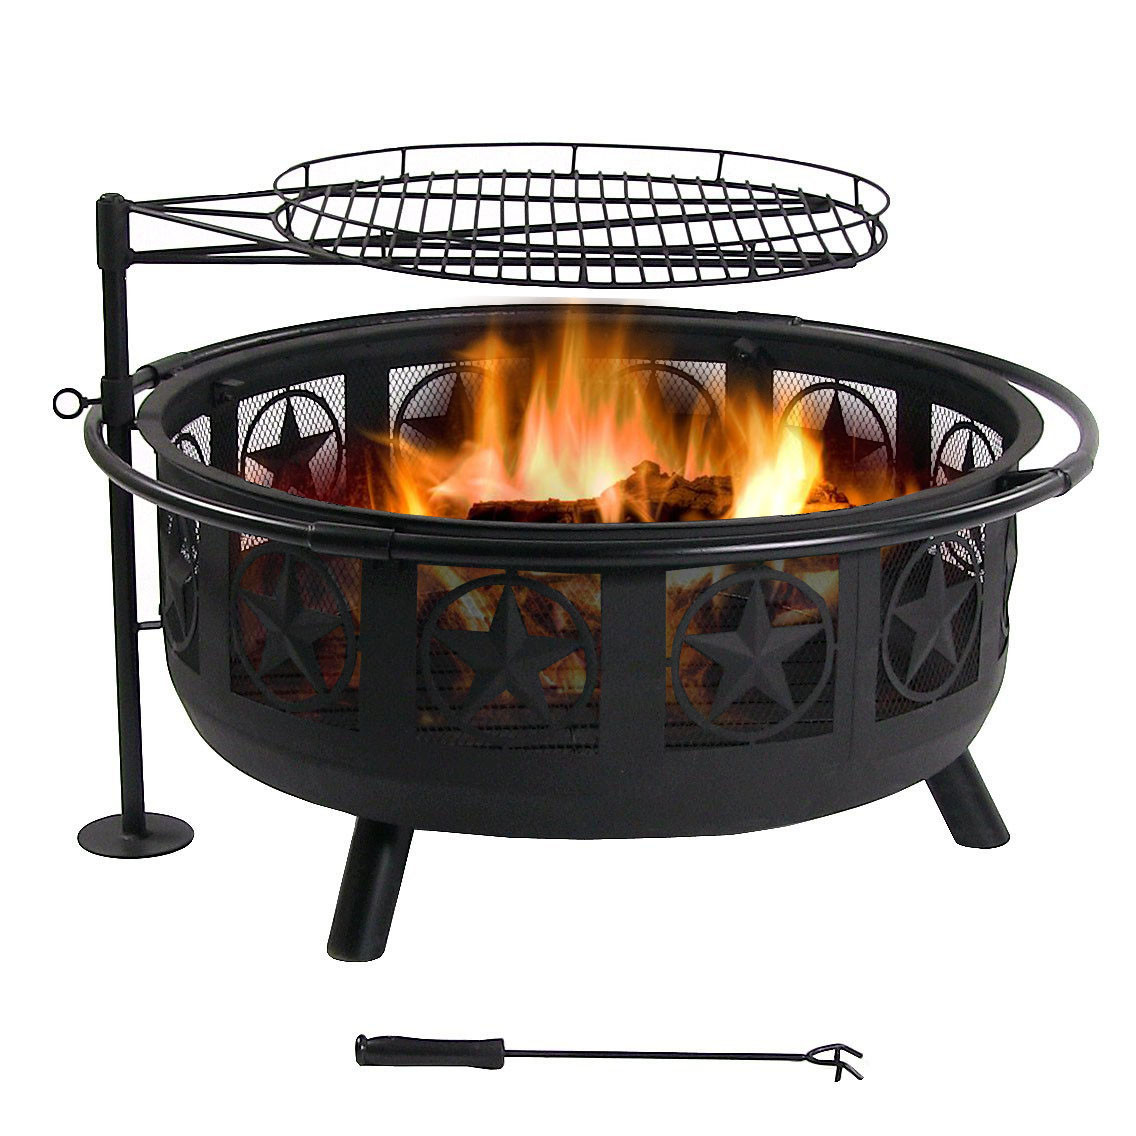 Sunnydaze Black All Star Fire Pit with Cooking Grate, Spark Screen, 30 Inch Diam KF-ASFP-BLK